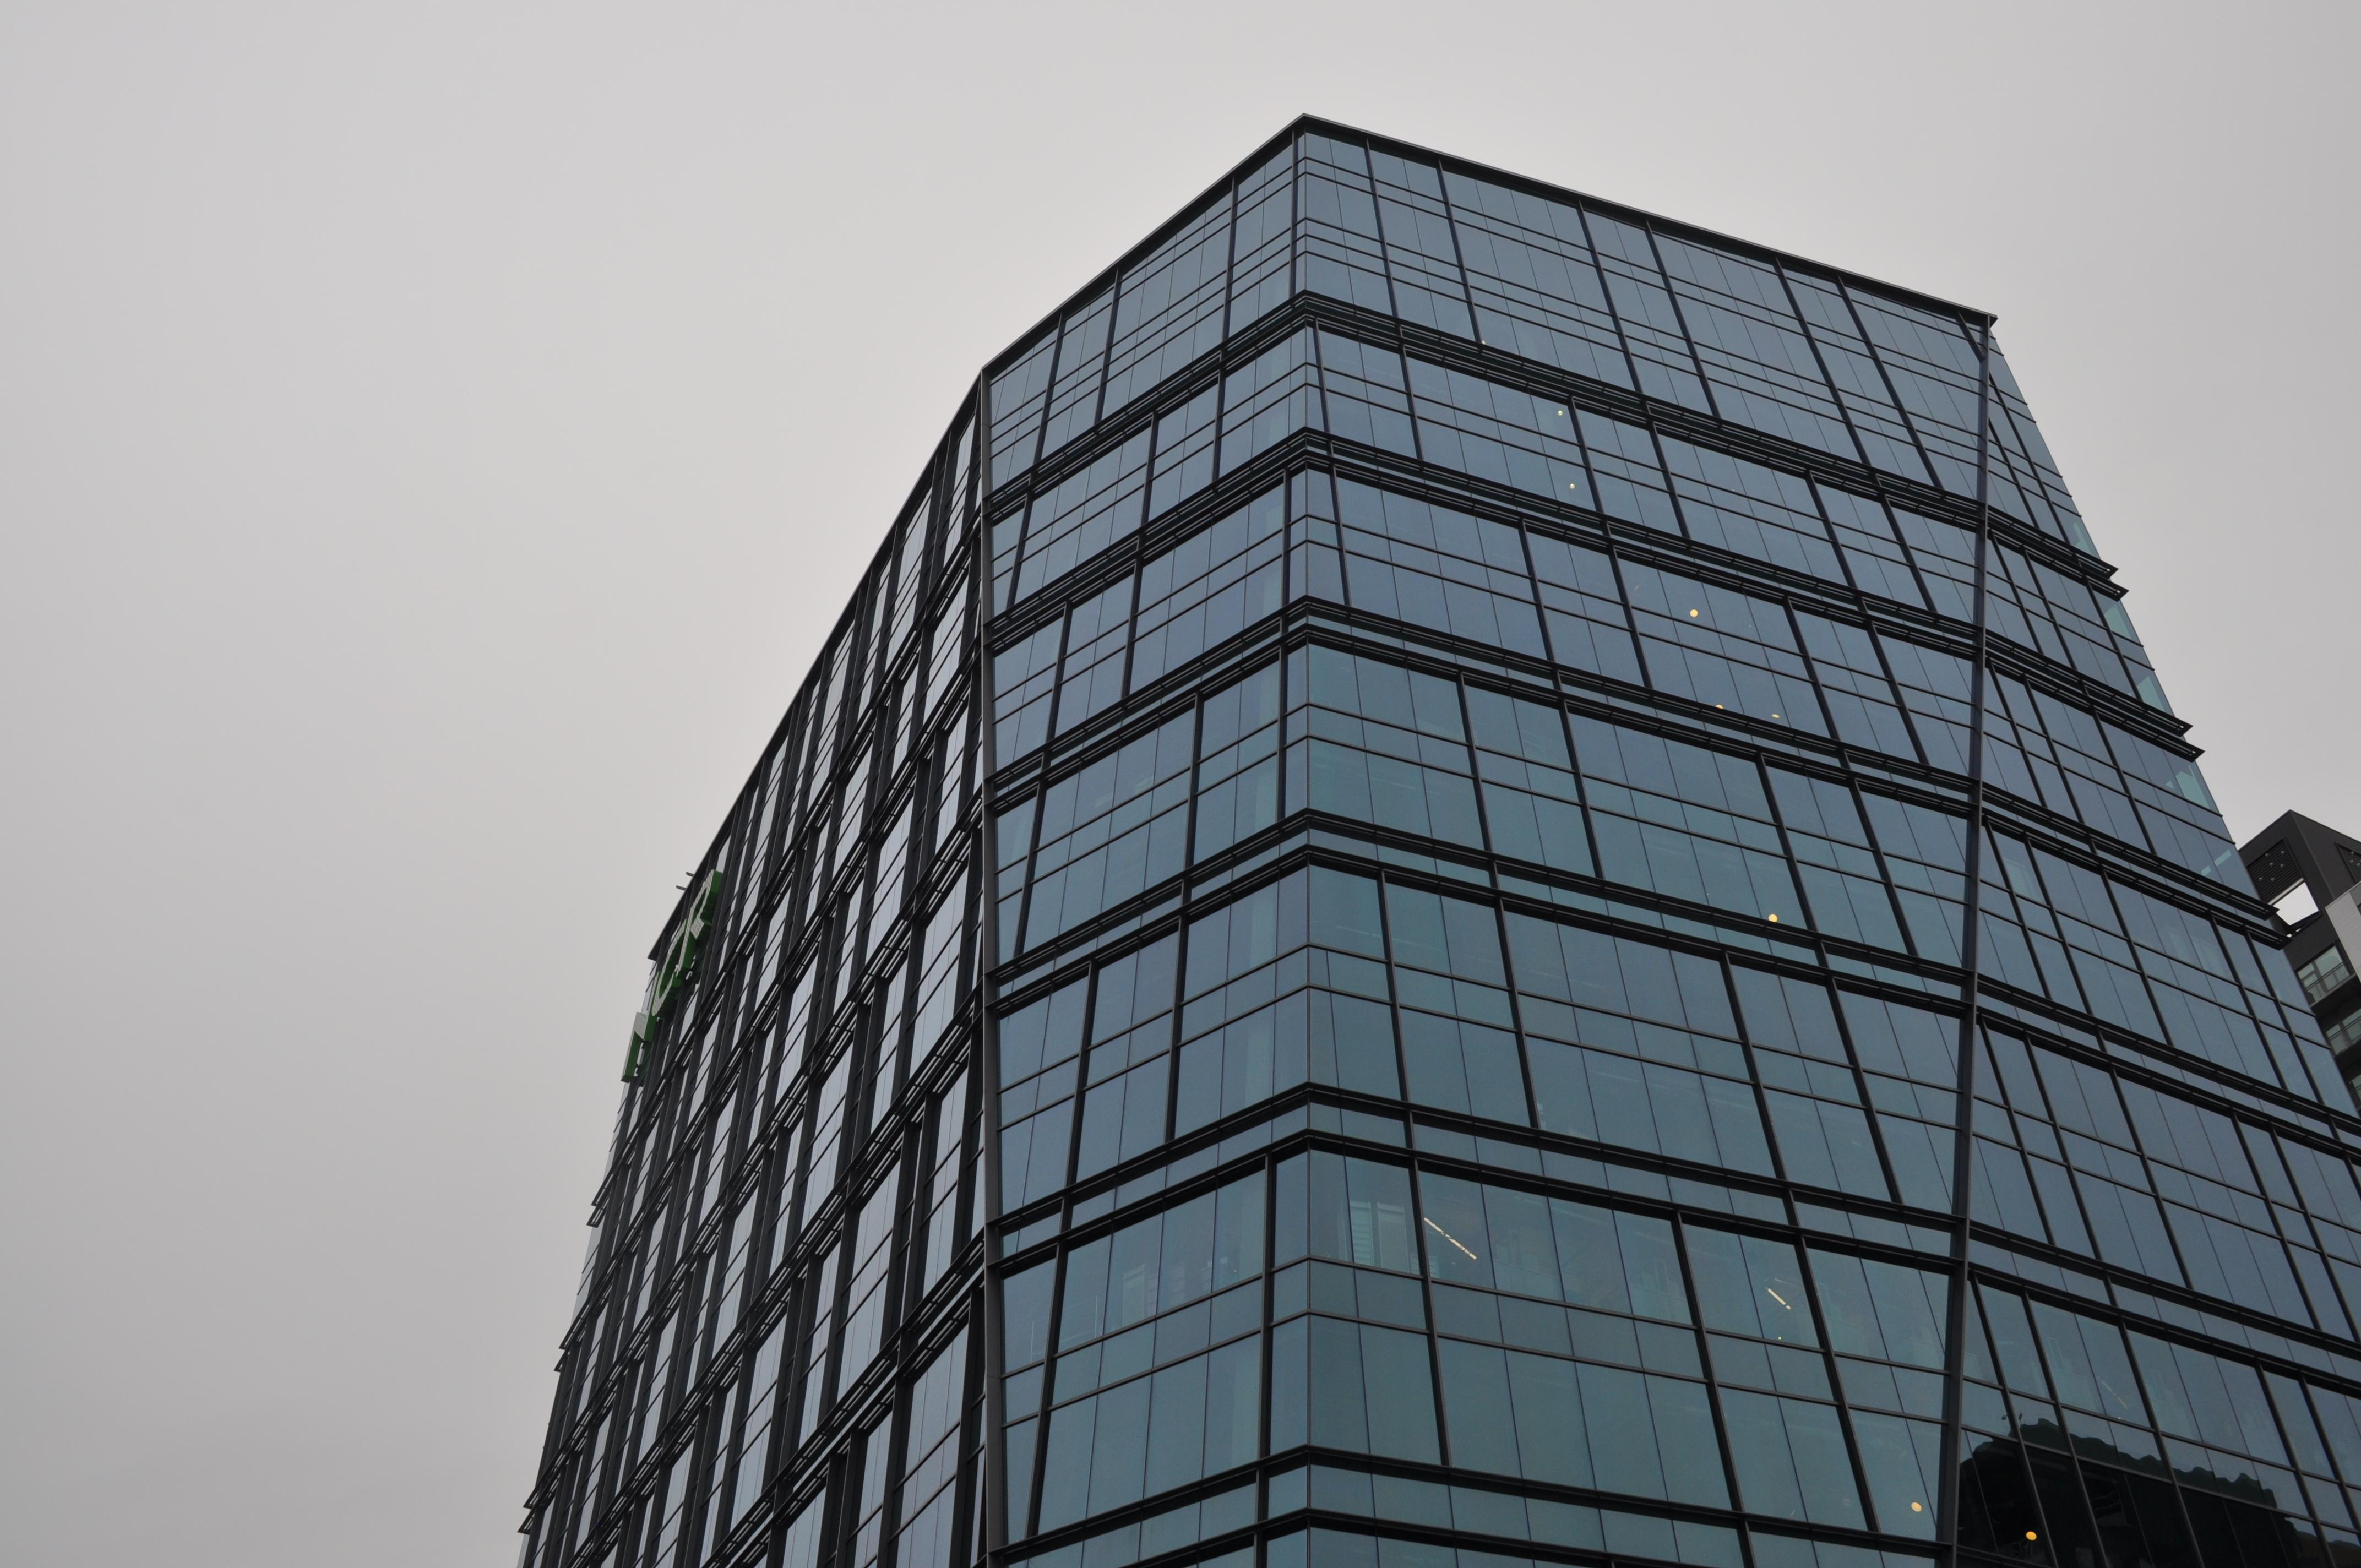 The faceted glass tower.